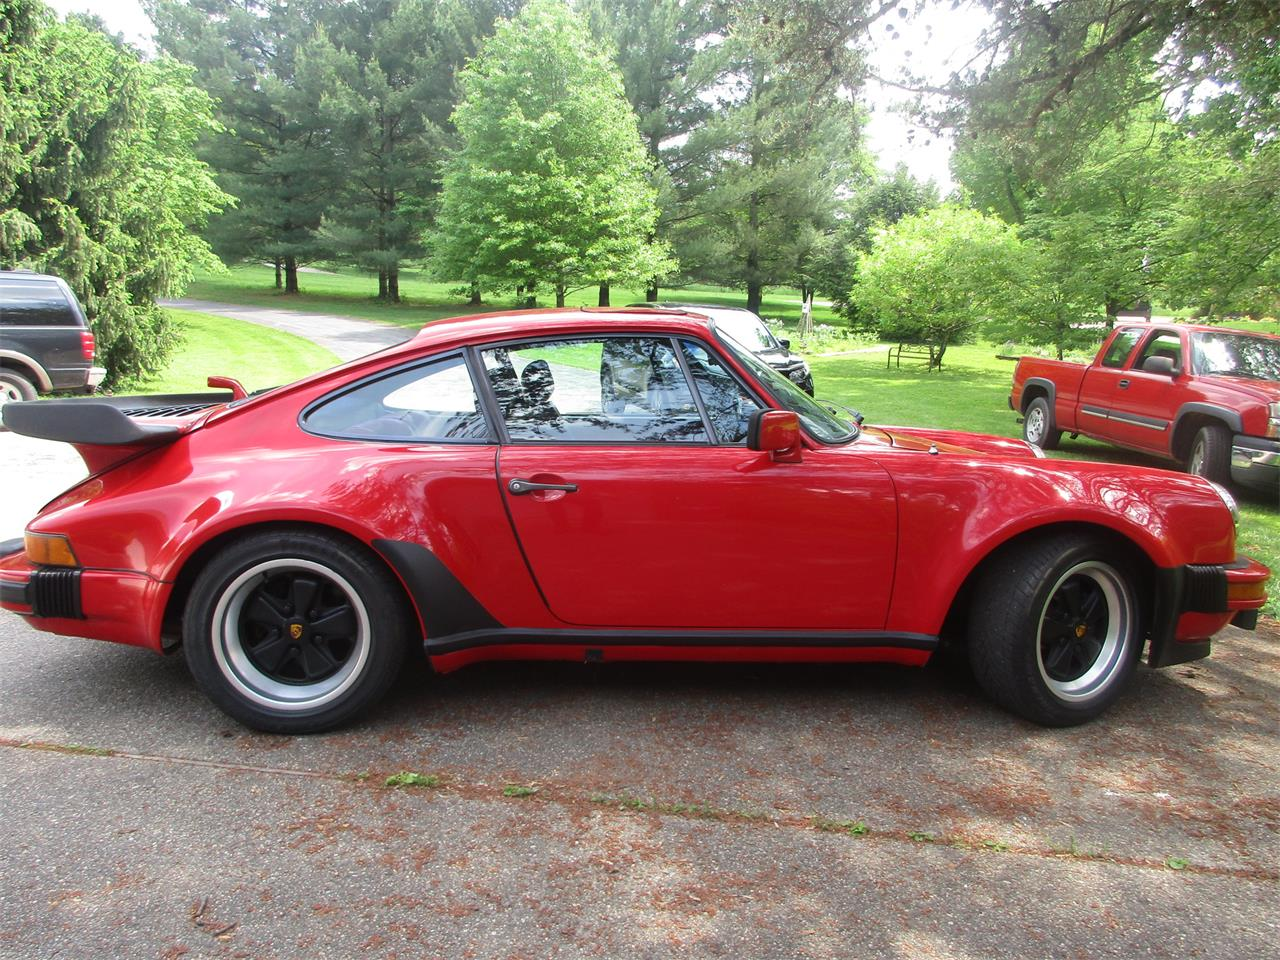 Large Picture of 1979 Porsche 930 Turbo located in Kentucky Offered by a Private Seller - Q2ZE